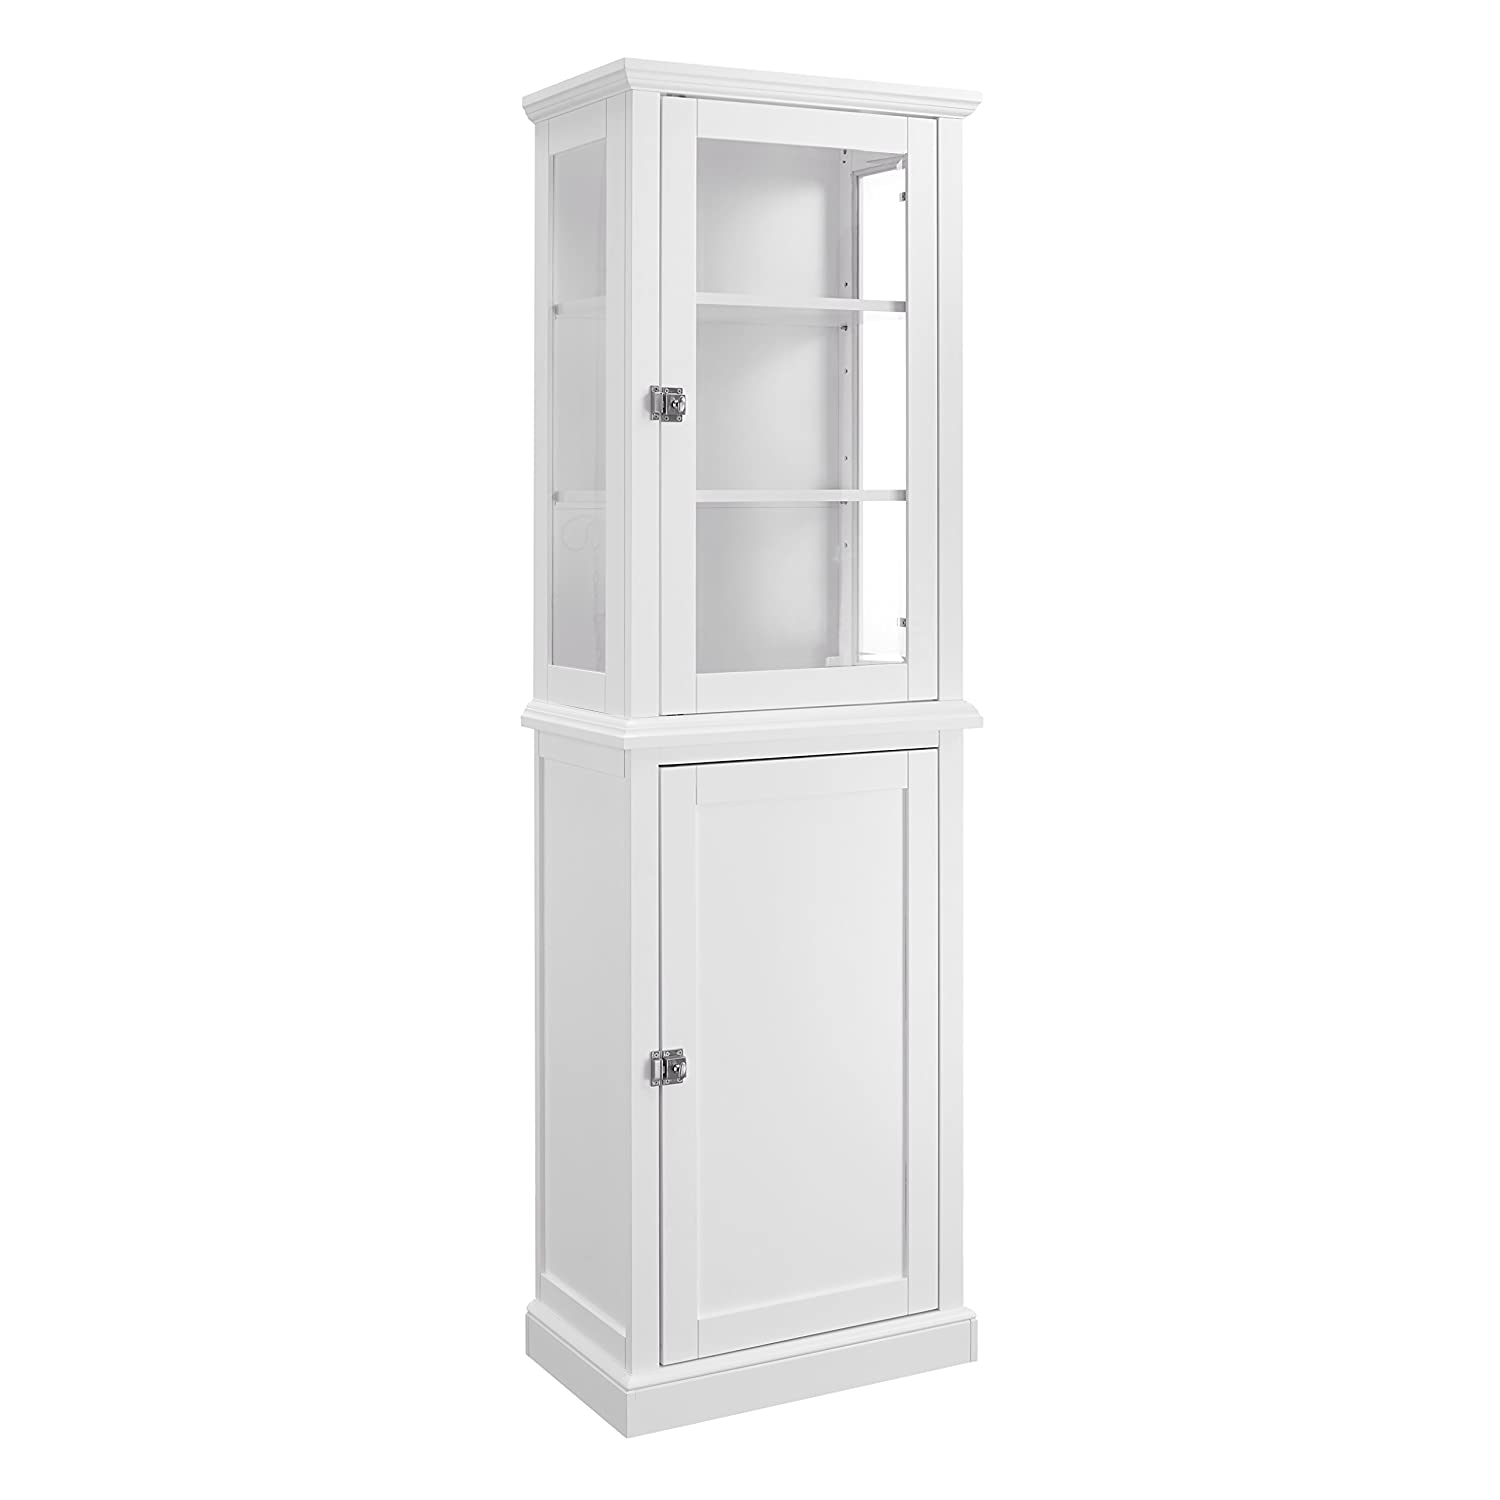 amazon com scarsdale tall bathroom cabinet white kitchen dining rh amazon com tall mirror bathroom cabinet white tall white freestanding bathroom cabinet